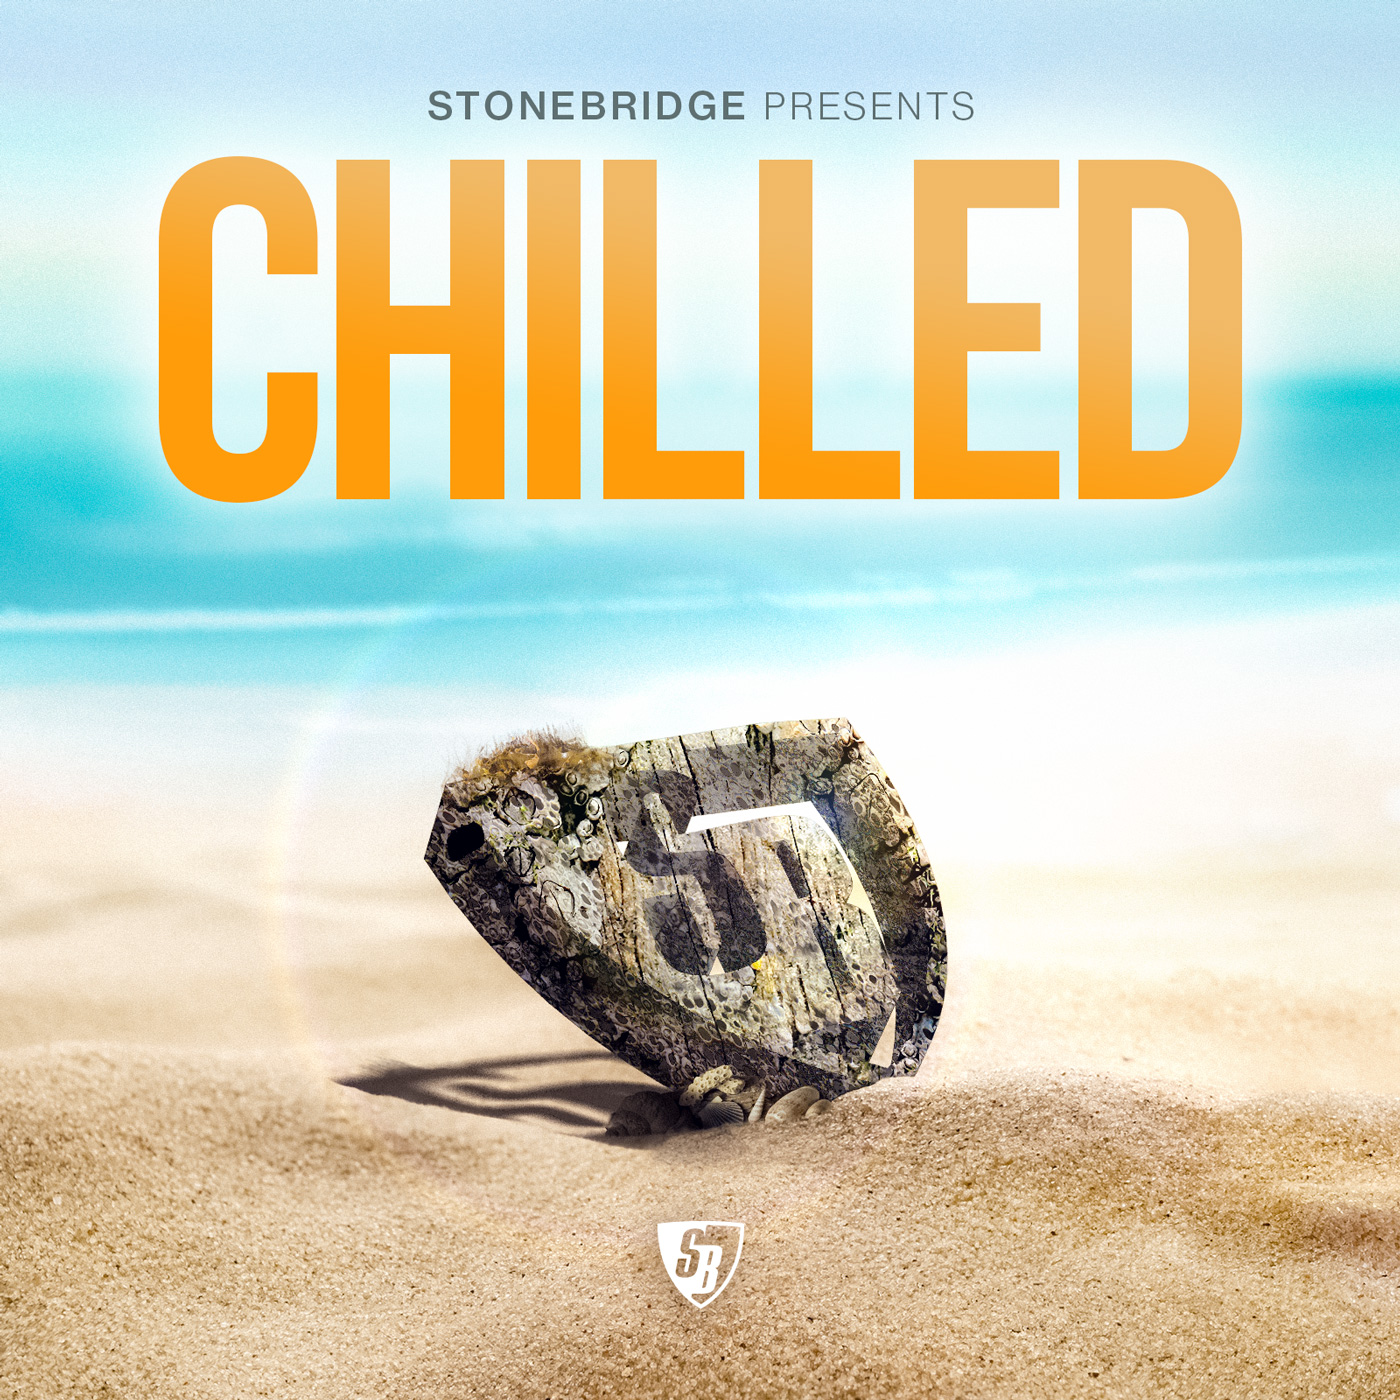 StoneBridge Releases A New Chill Out Album